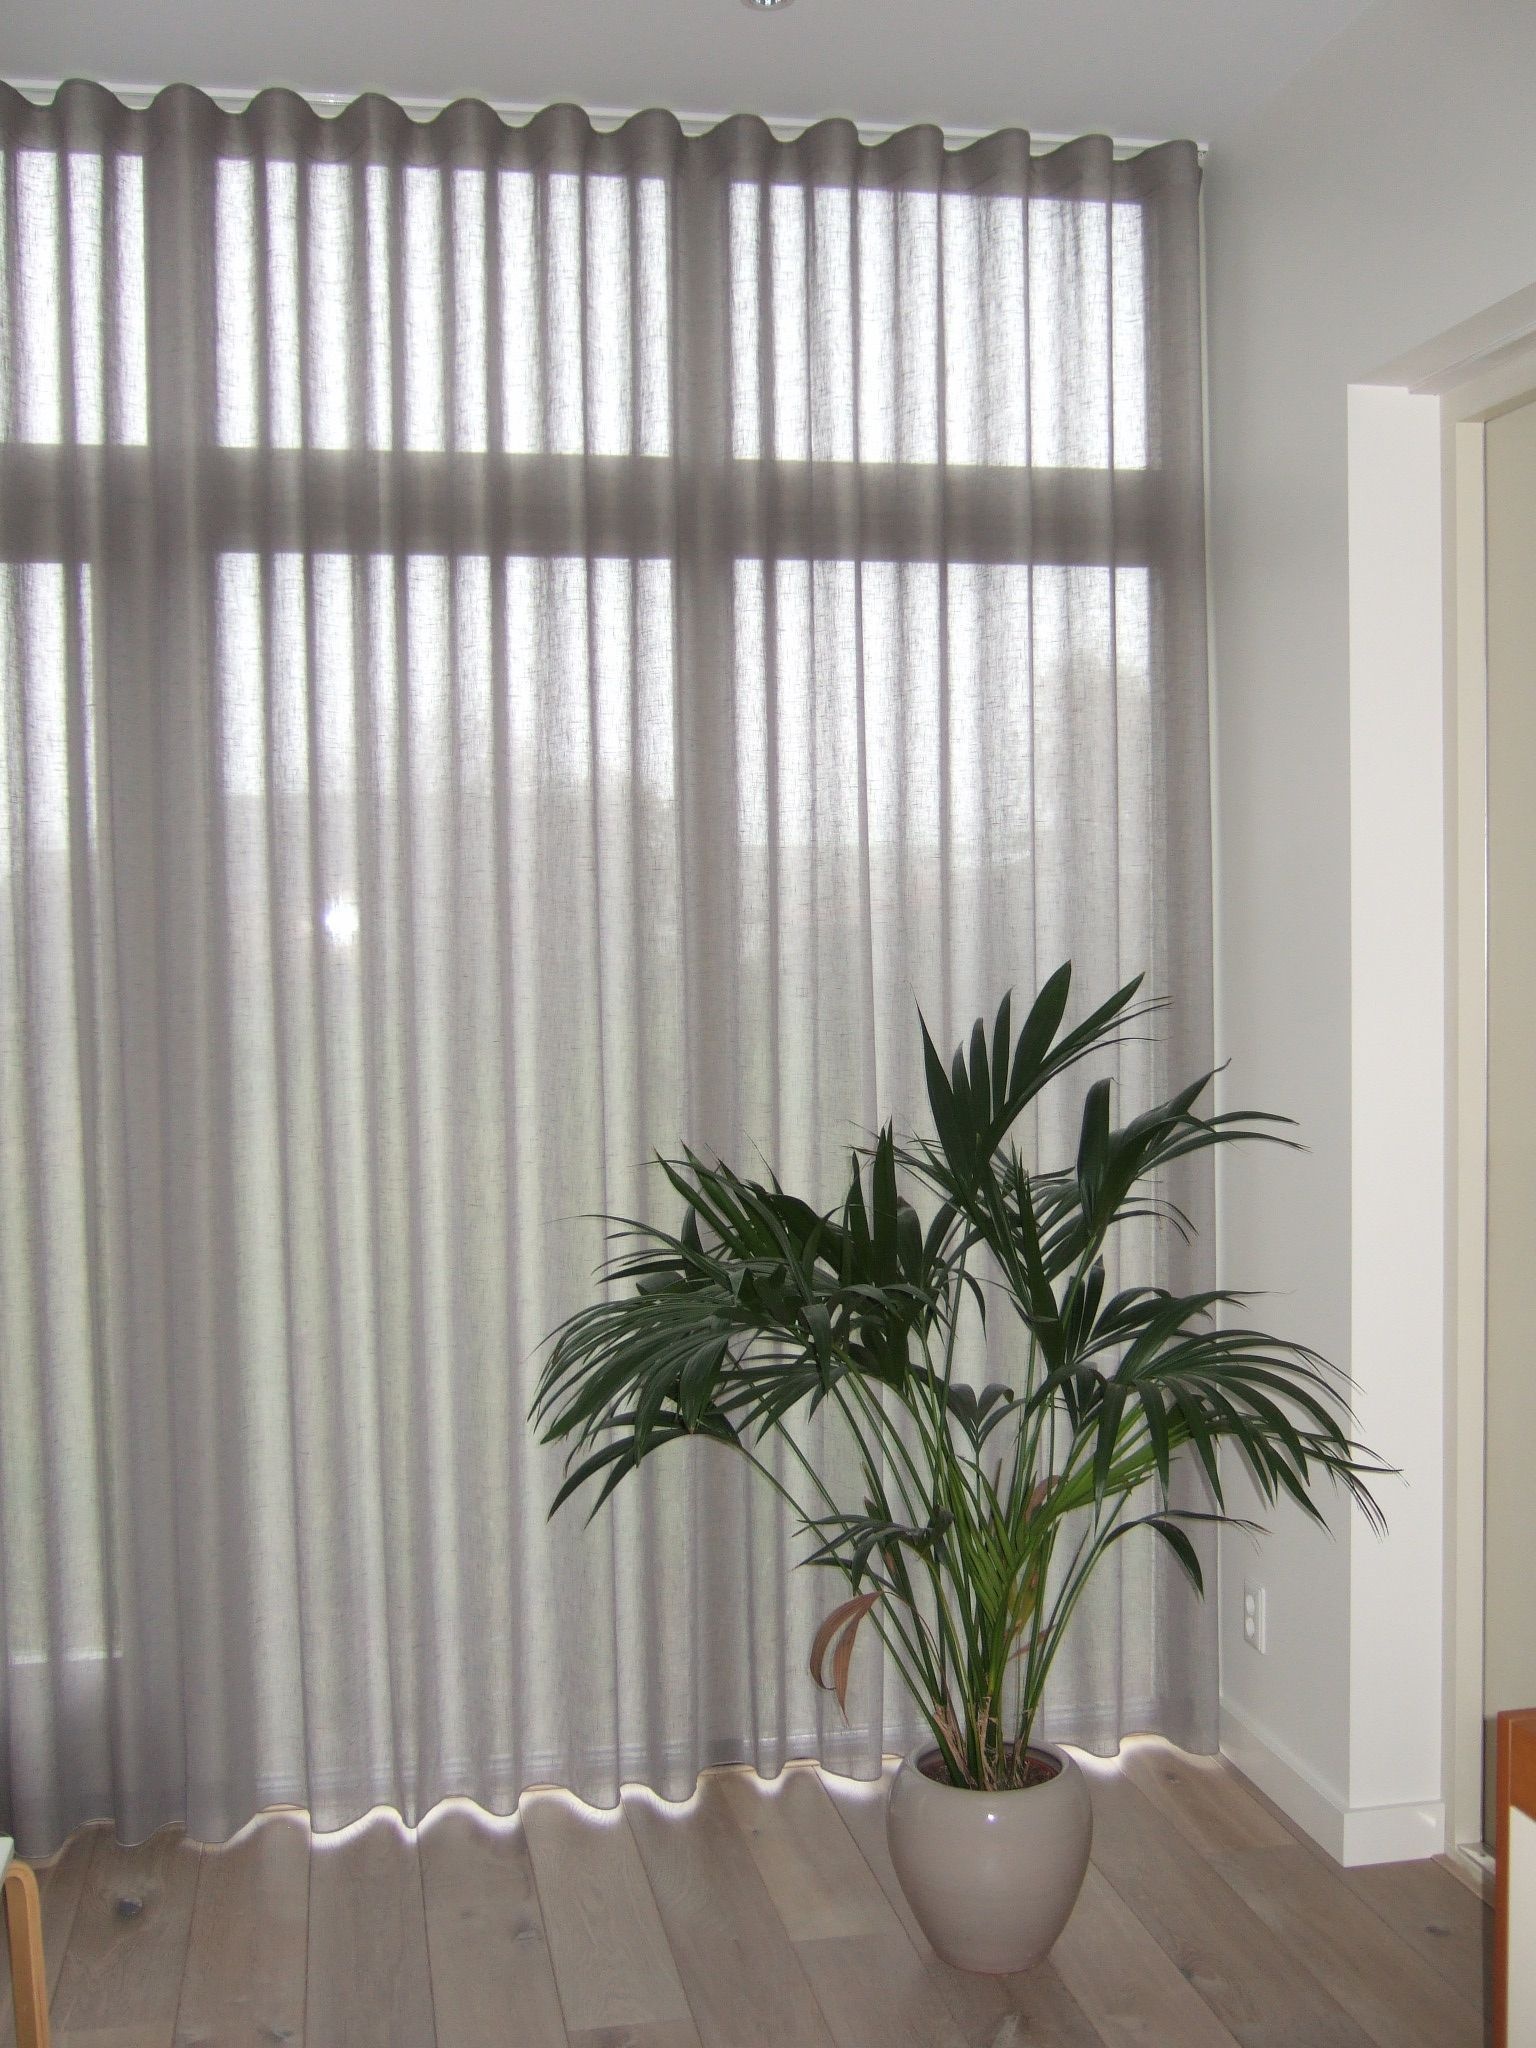 how to clean faux wood blinds while hanging